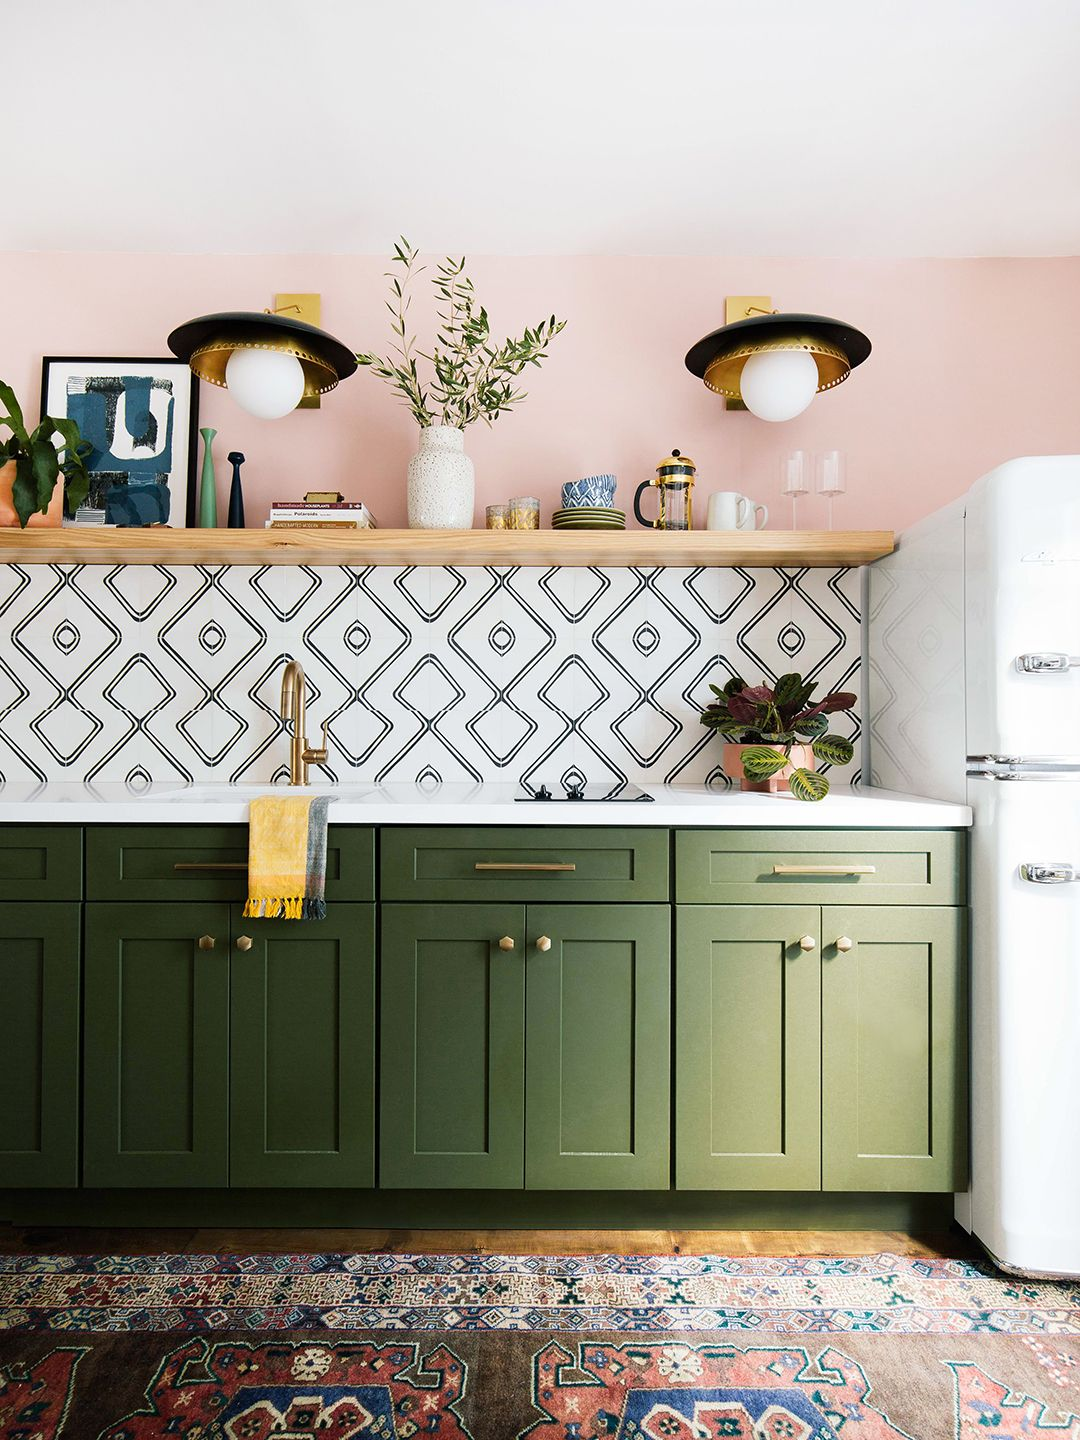 8 Kitchen Trends That Will Be Huge In 2019 In 2020 Interior